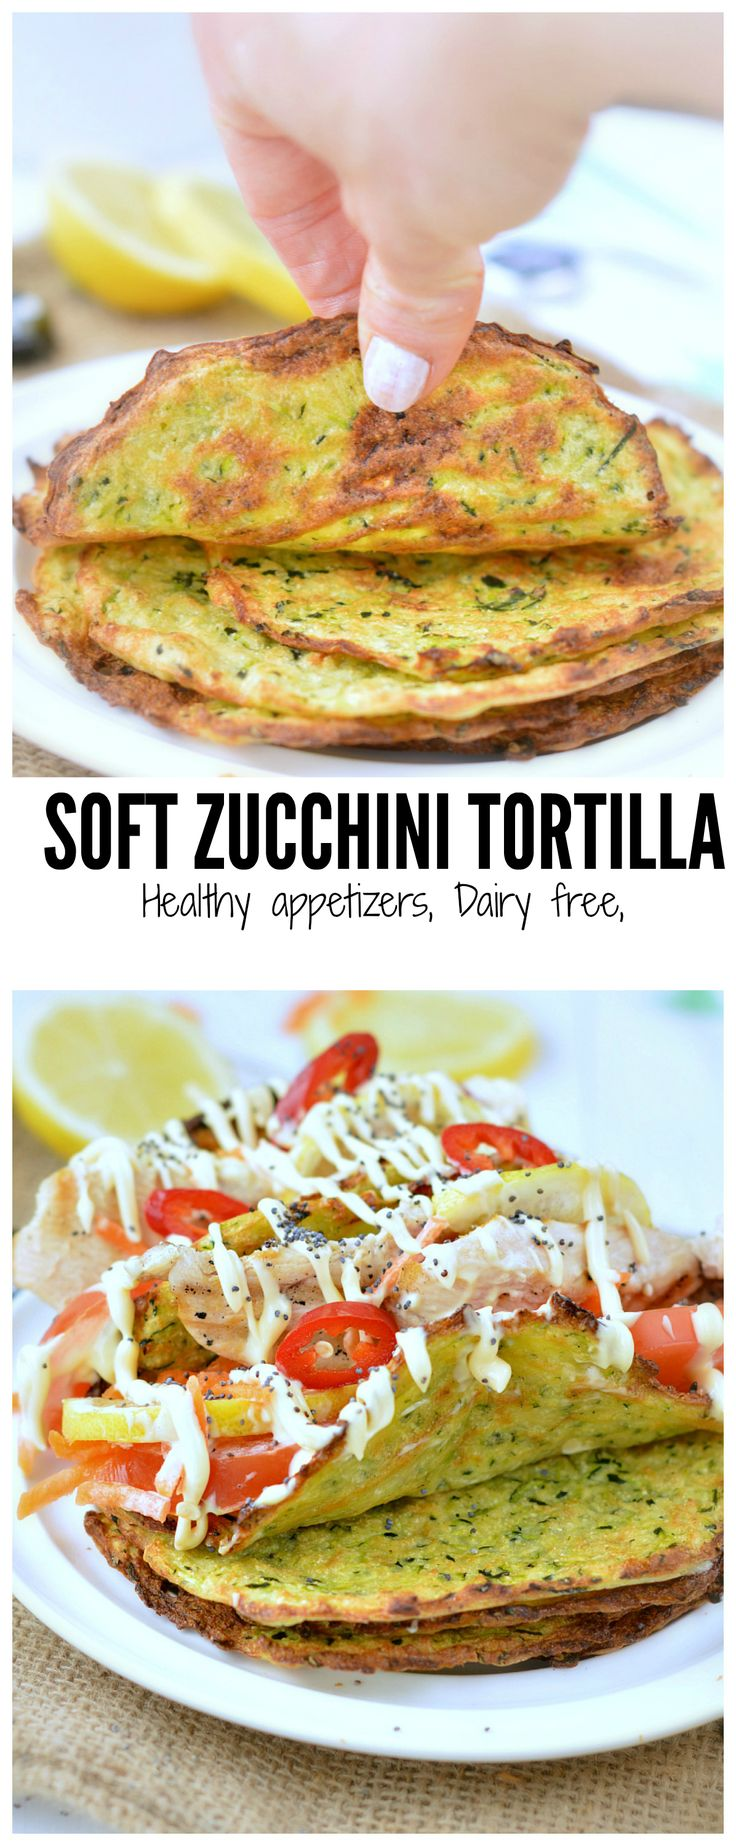 Healthy soft zucchini tortilla, no cheese only good nutritious grated zucchini, coconut flour and arrowroot flour. Yum! perfect for the next game night #zucchini #tortilla #fingerfood #appetizers